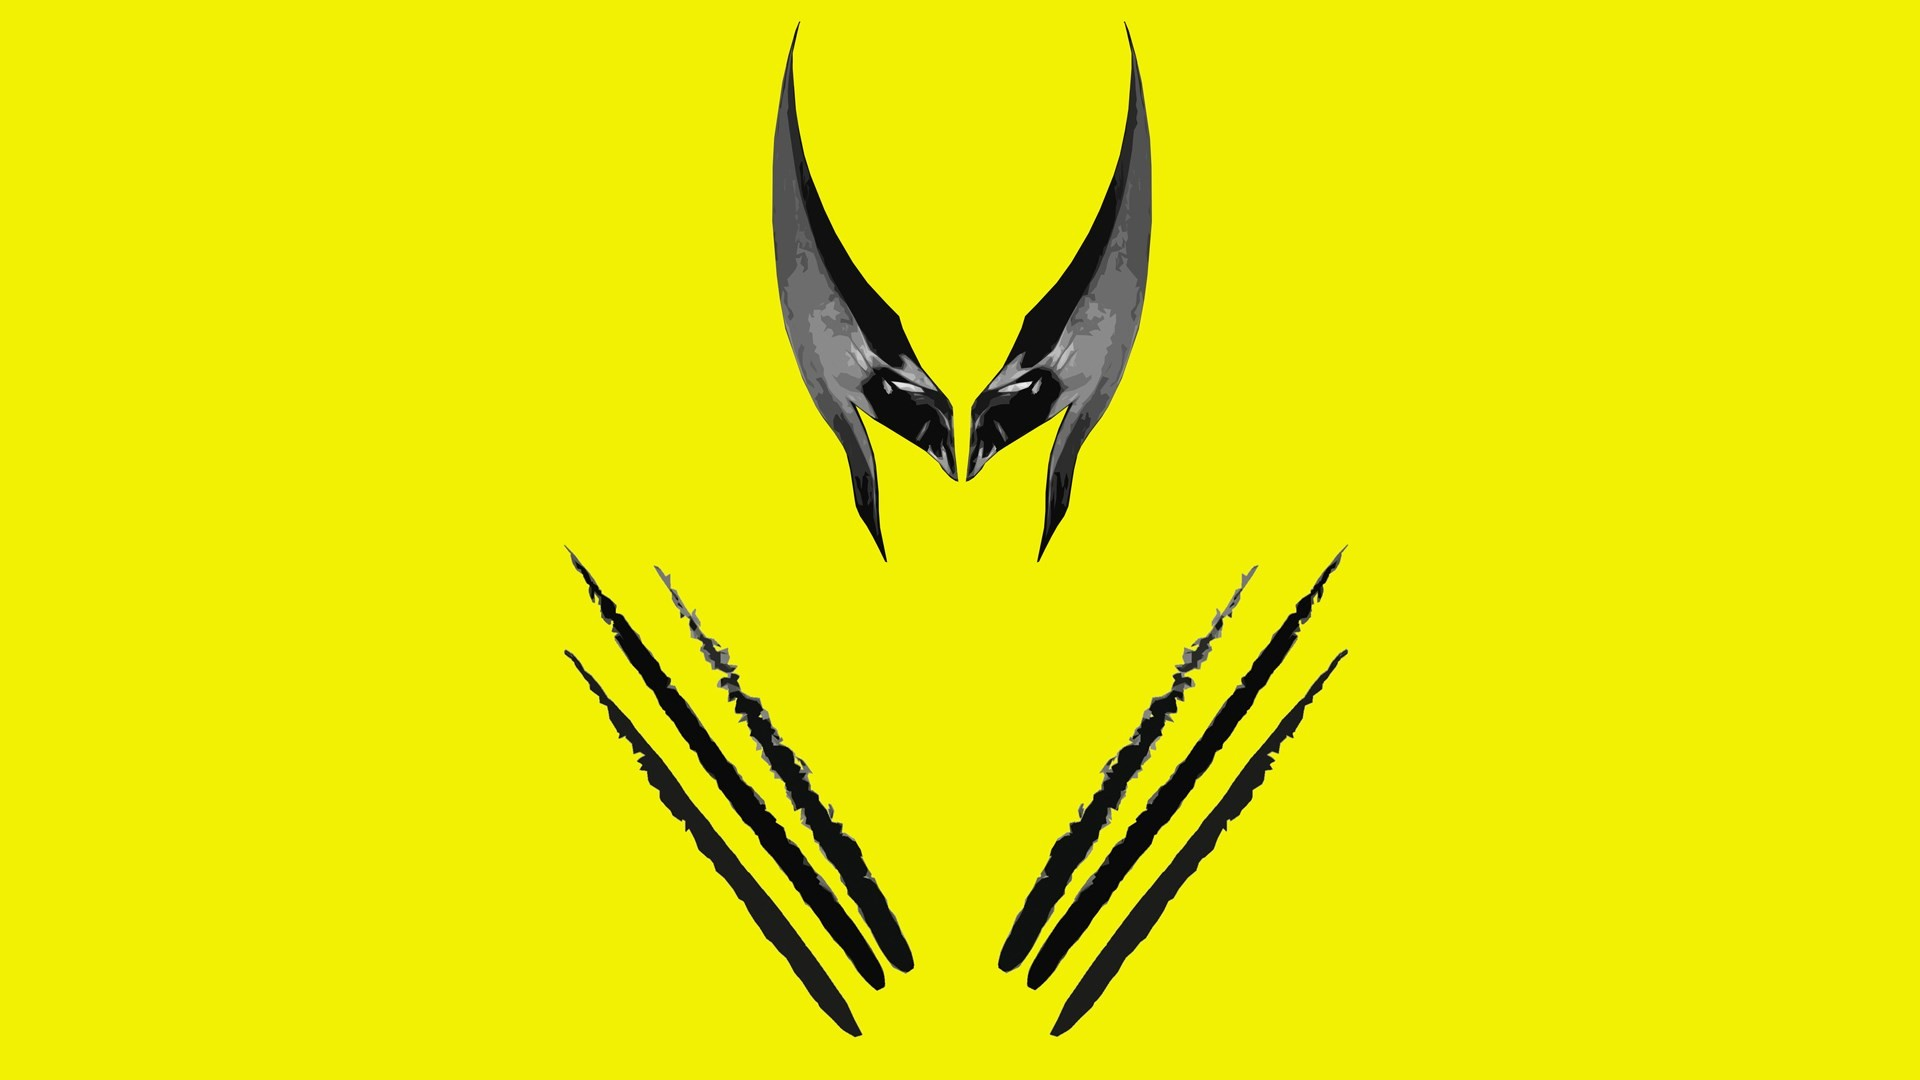 1920x1080 Buckminster Black - Free download wolverine image -  px